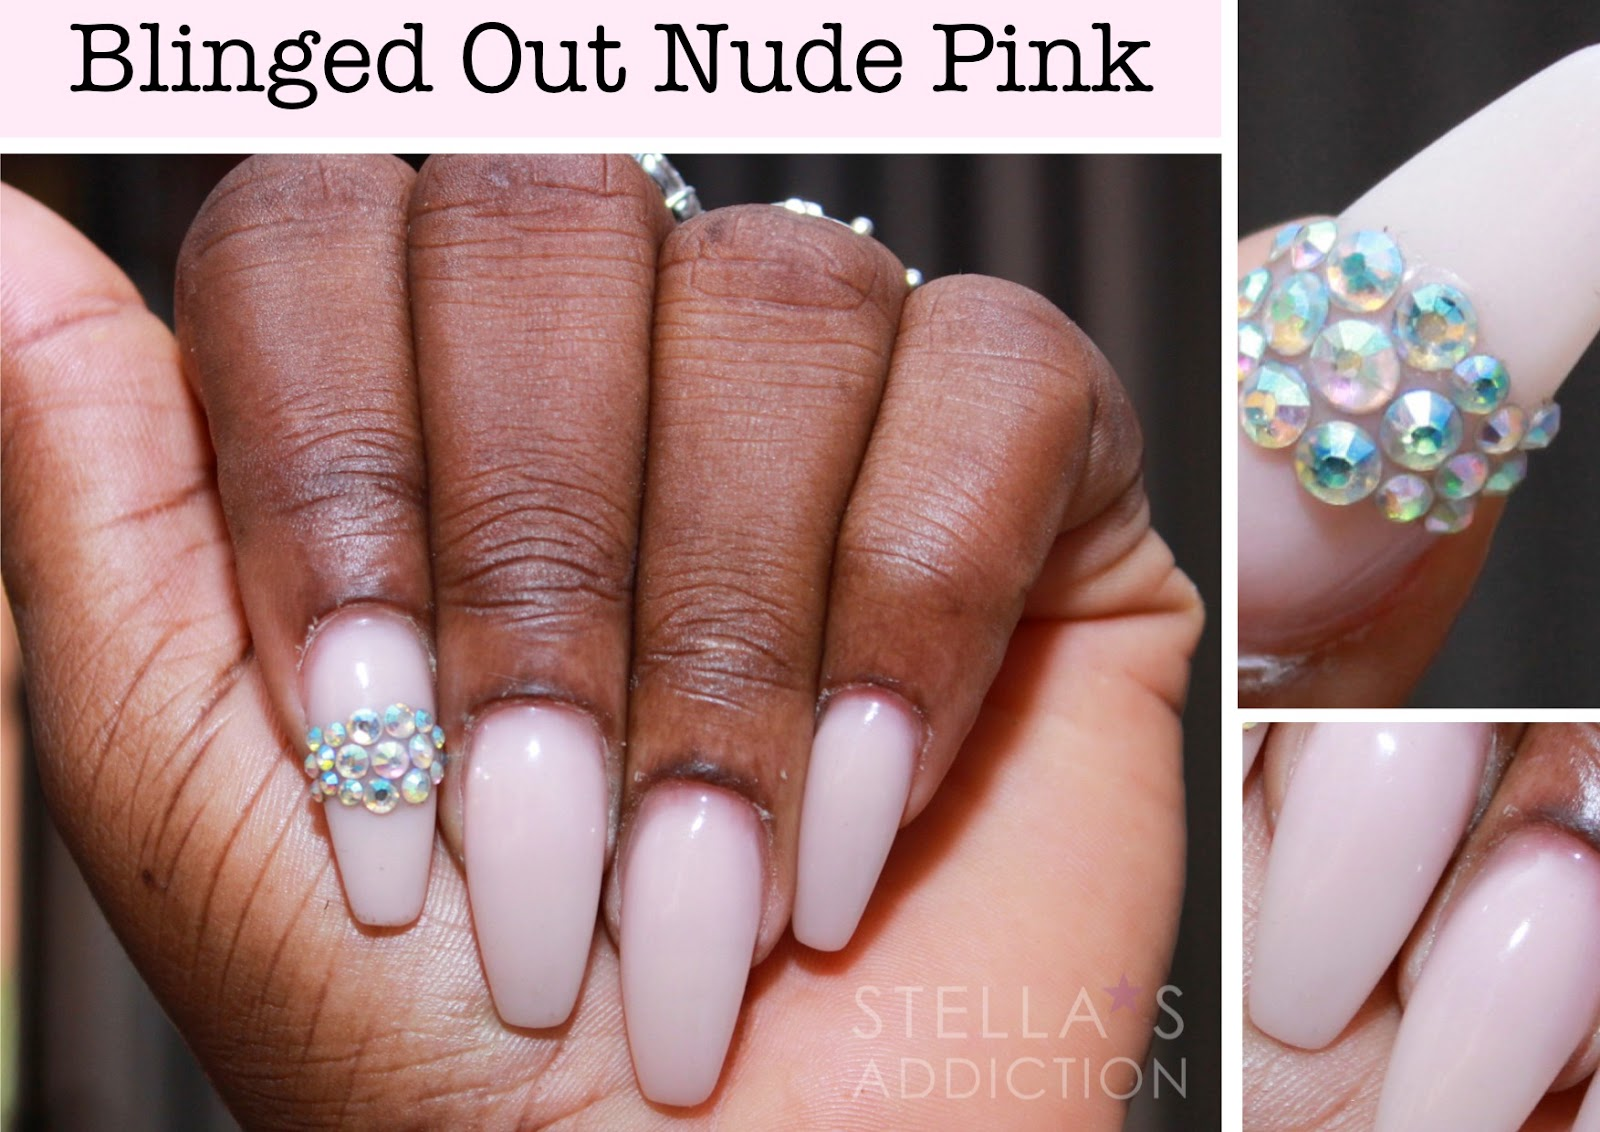 Notd blinged out nude pink nail art stellas addiction to achieve this design we used clear tips covered in nude pink acrylic powder from peggy sage paris and feature nails embellished with crystals from amazing prinsesfo Gallery